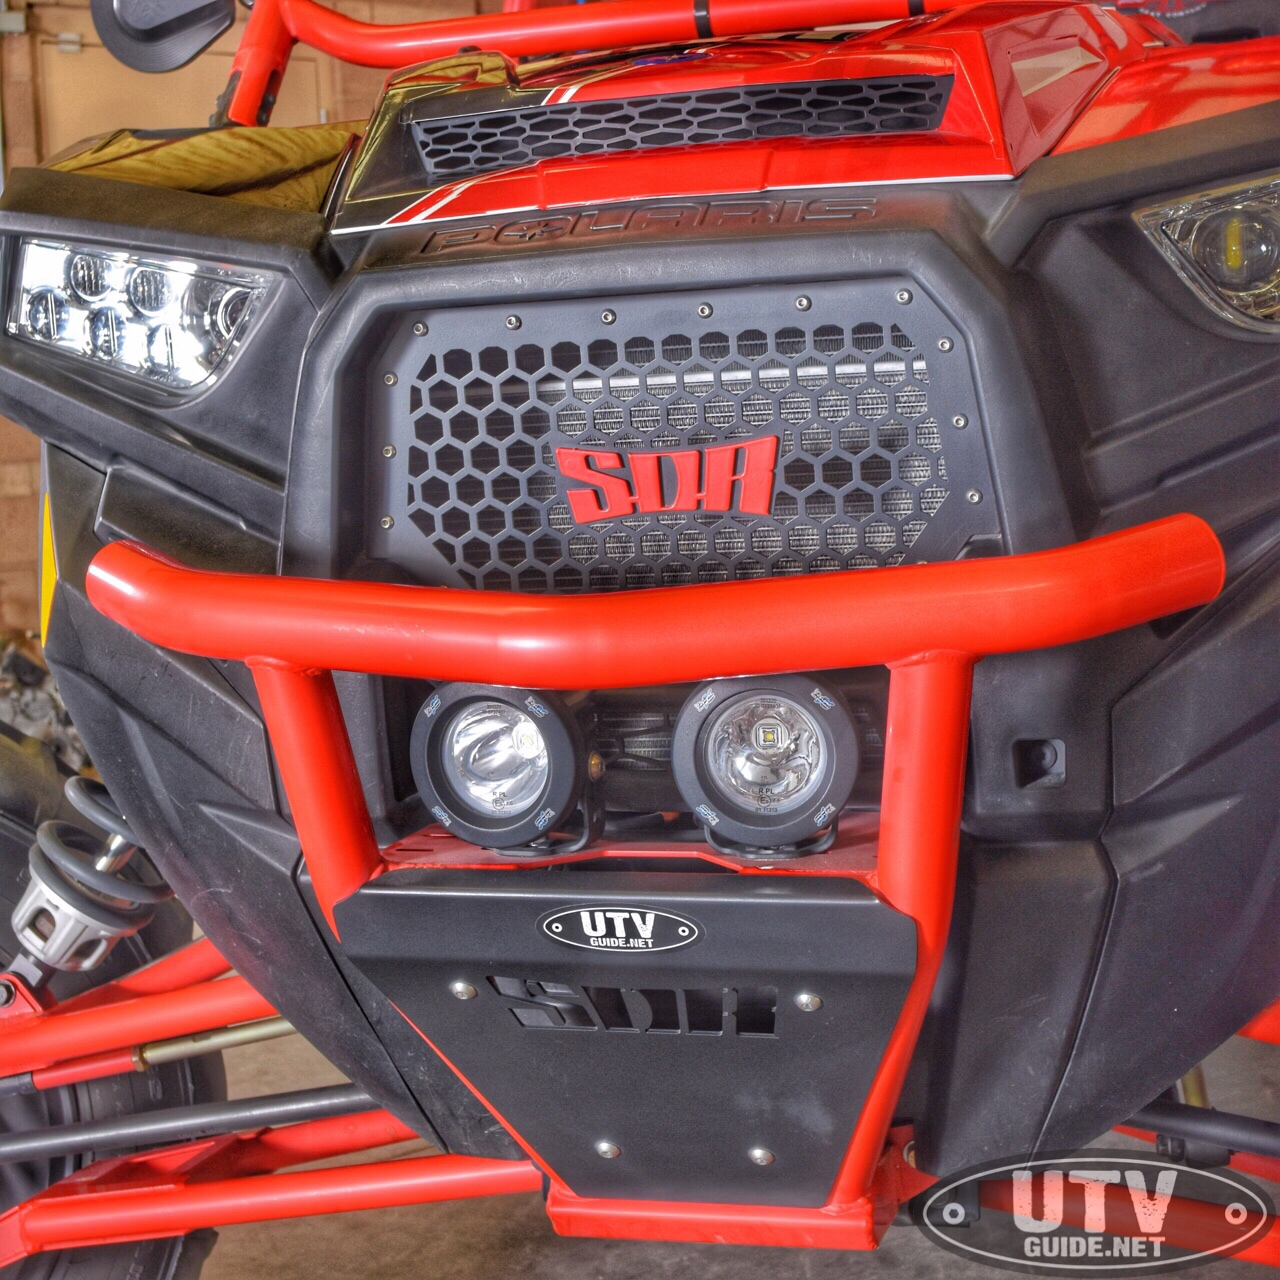 SDR Motorsports Bumper with Vision X Lights